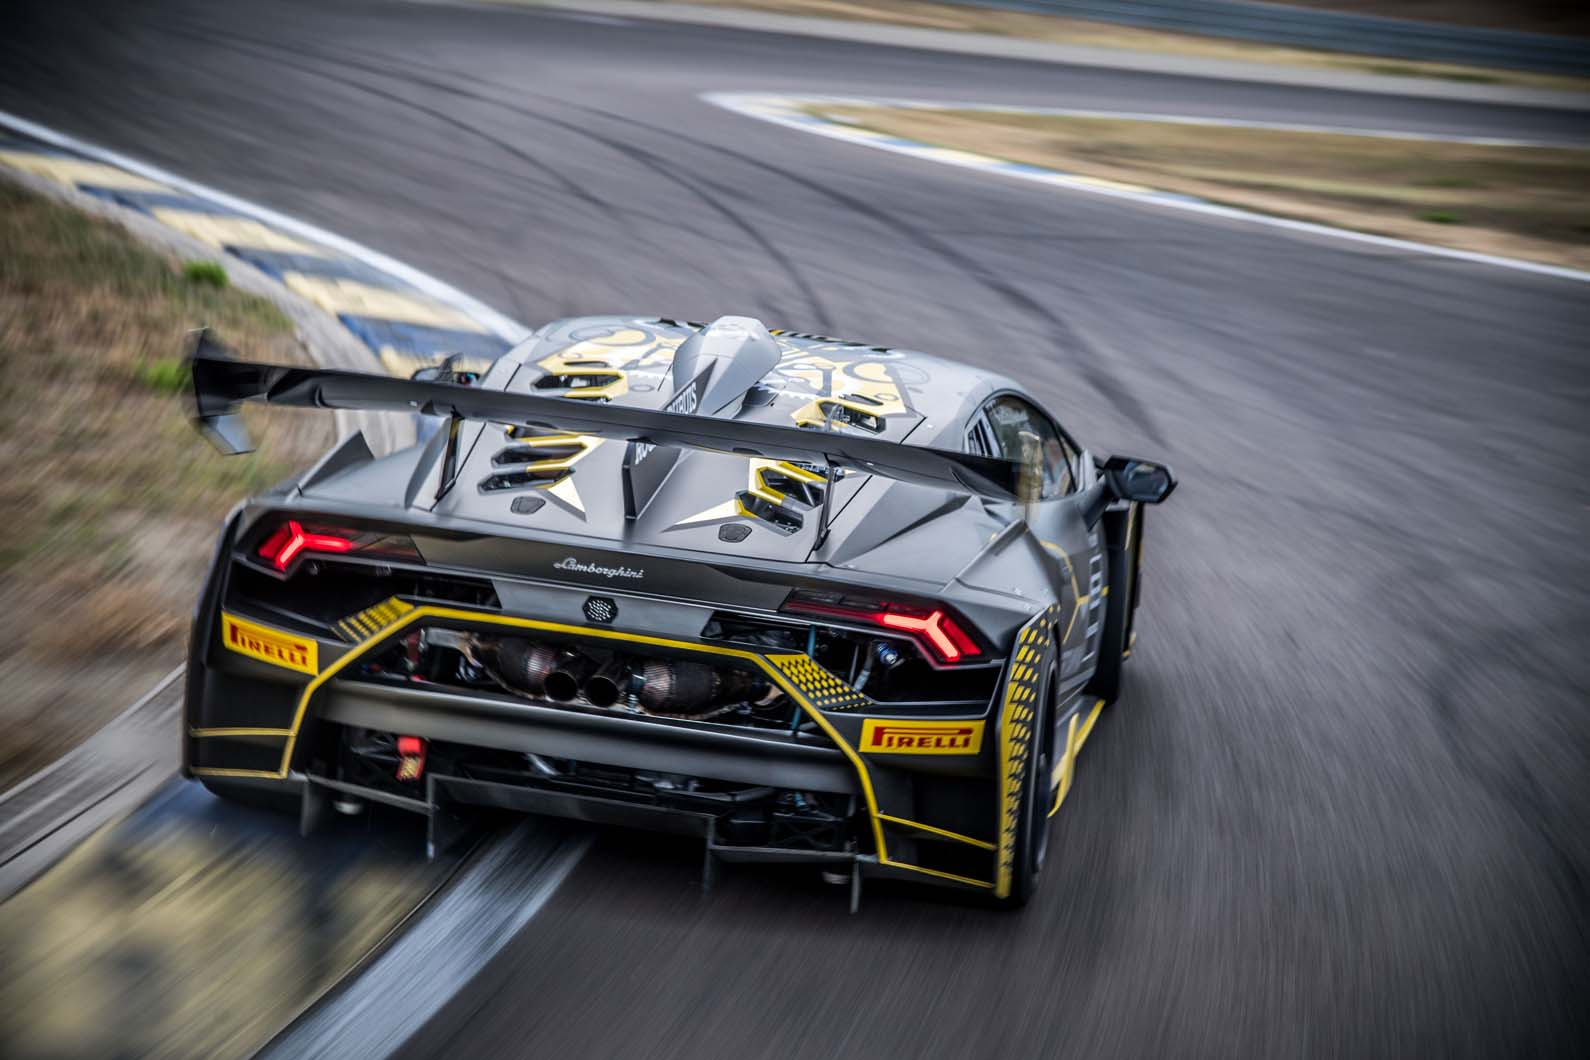 lamborghini huracan super trofeo evo revealed as new gt racer autocar. Black Bedroom Furniture Sets. Home Design Ideas